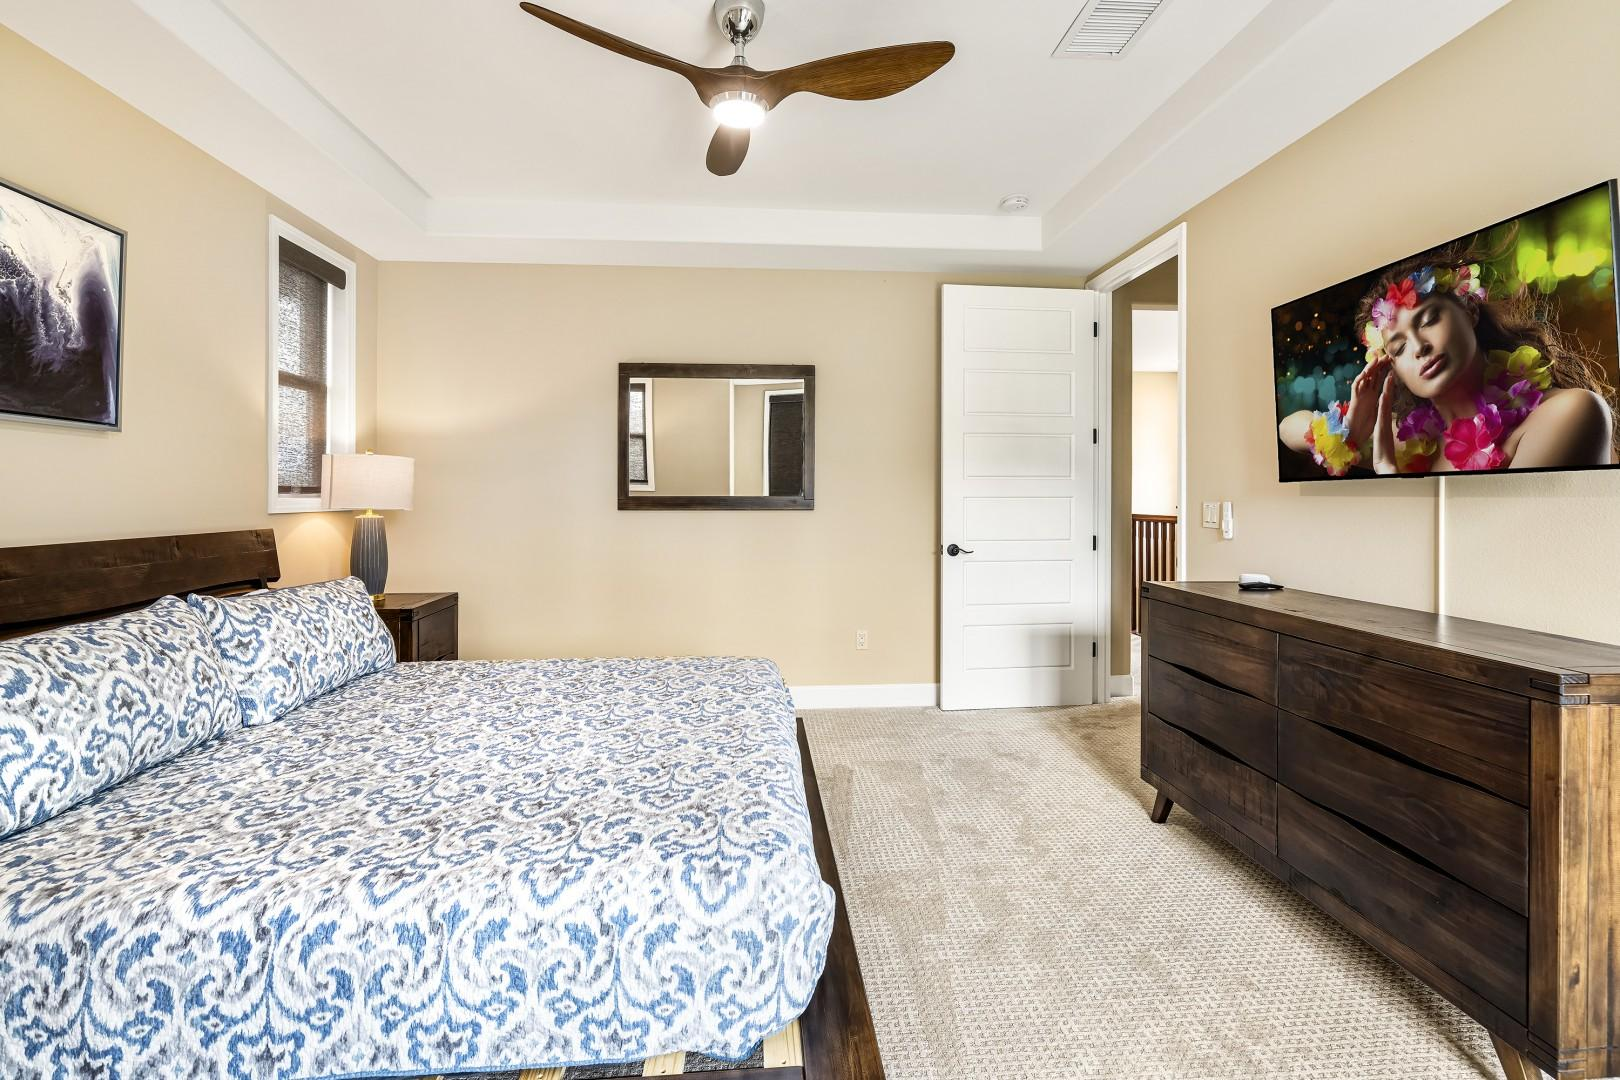 Eastern King bed, TV, A?C, Ocean views, ensuite, walk in  closet, soaking tub and private Lanai are just some of the wonderful features found in the Master bedroom!